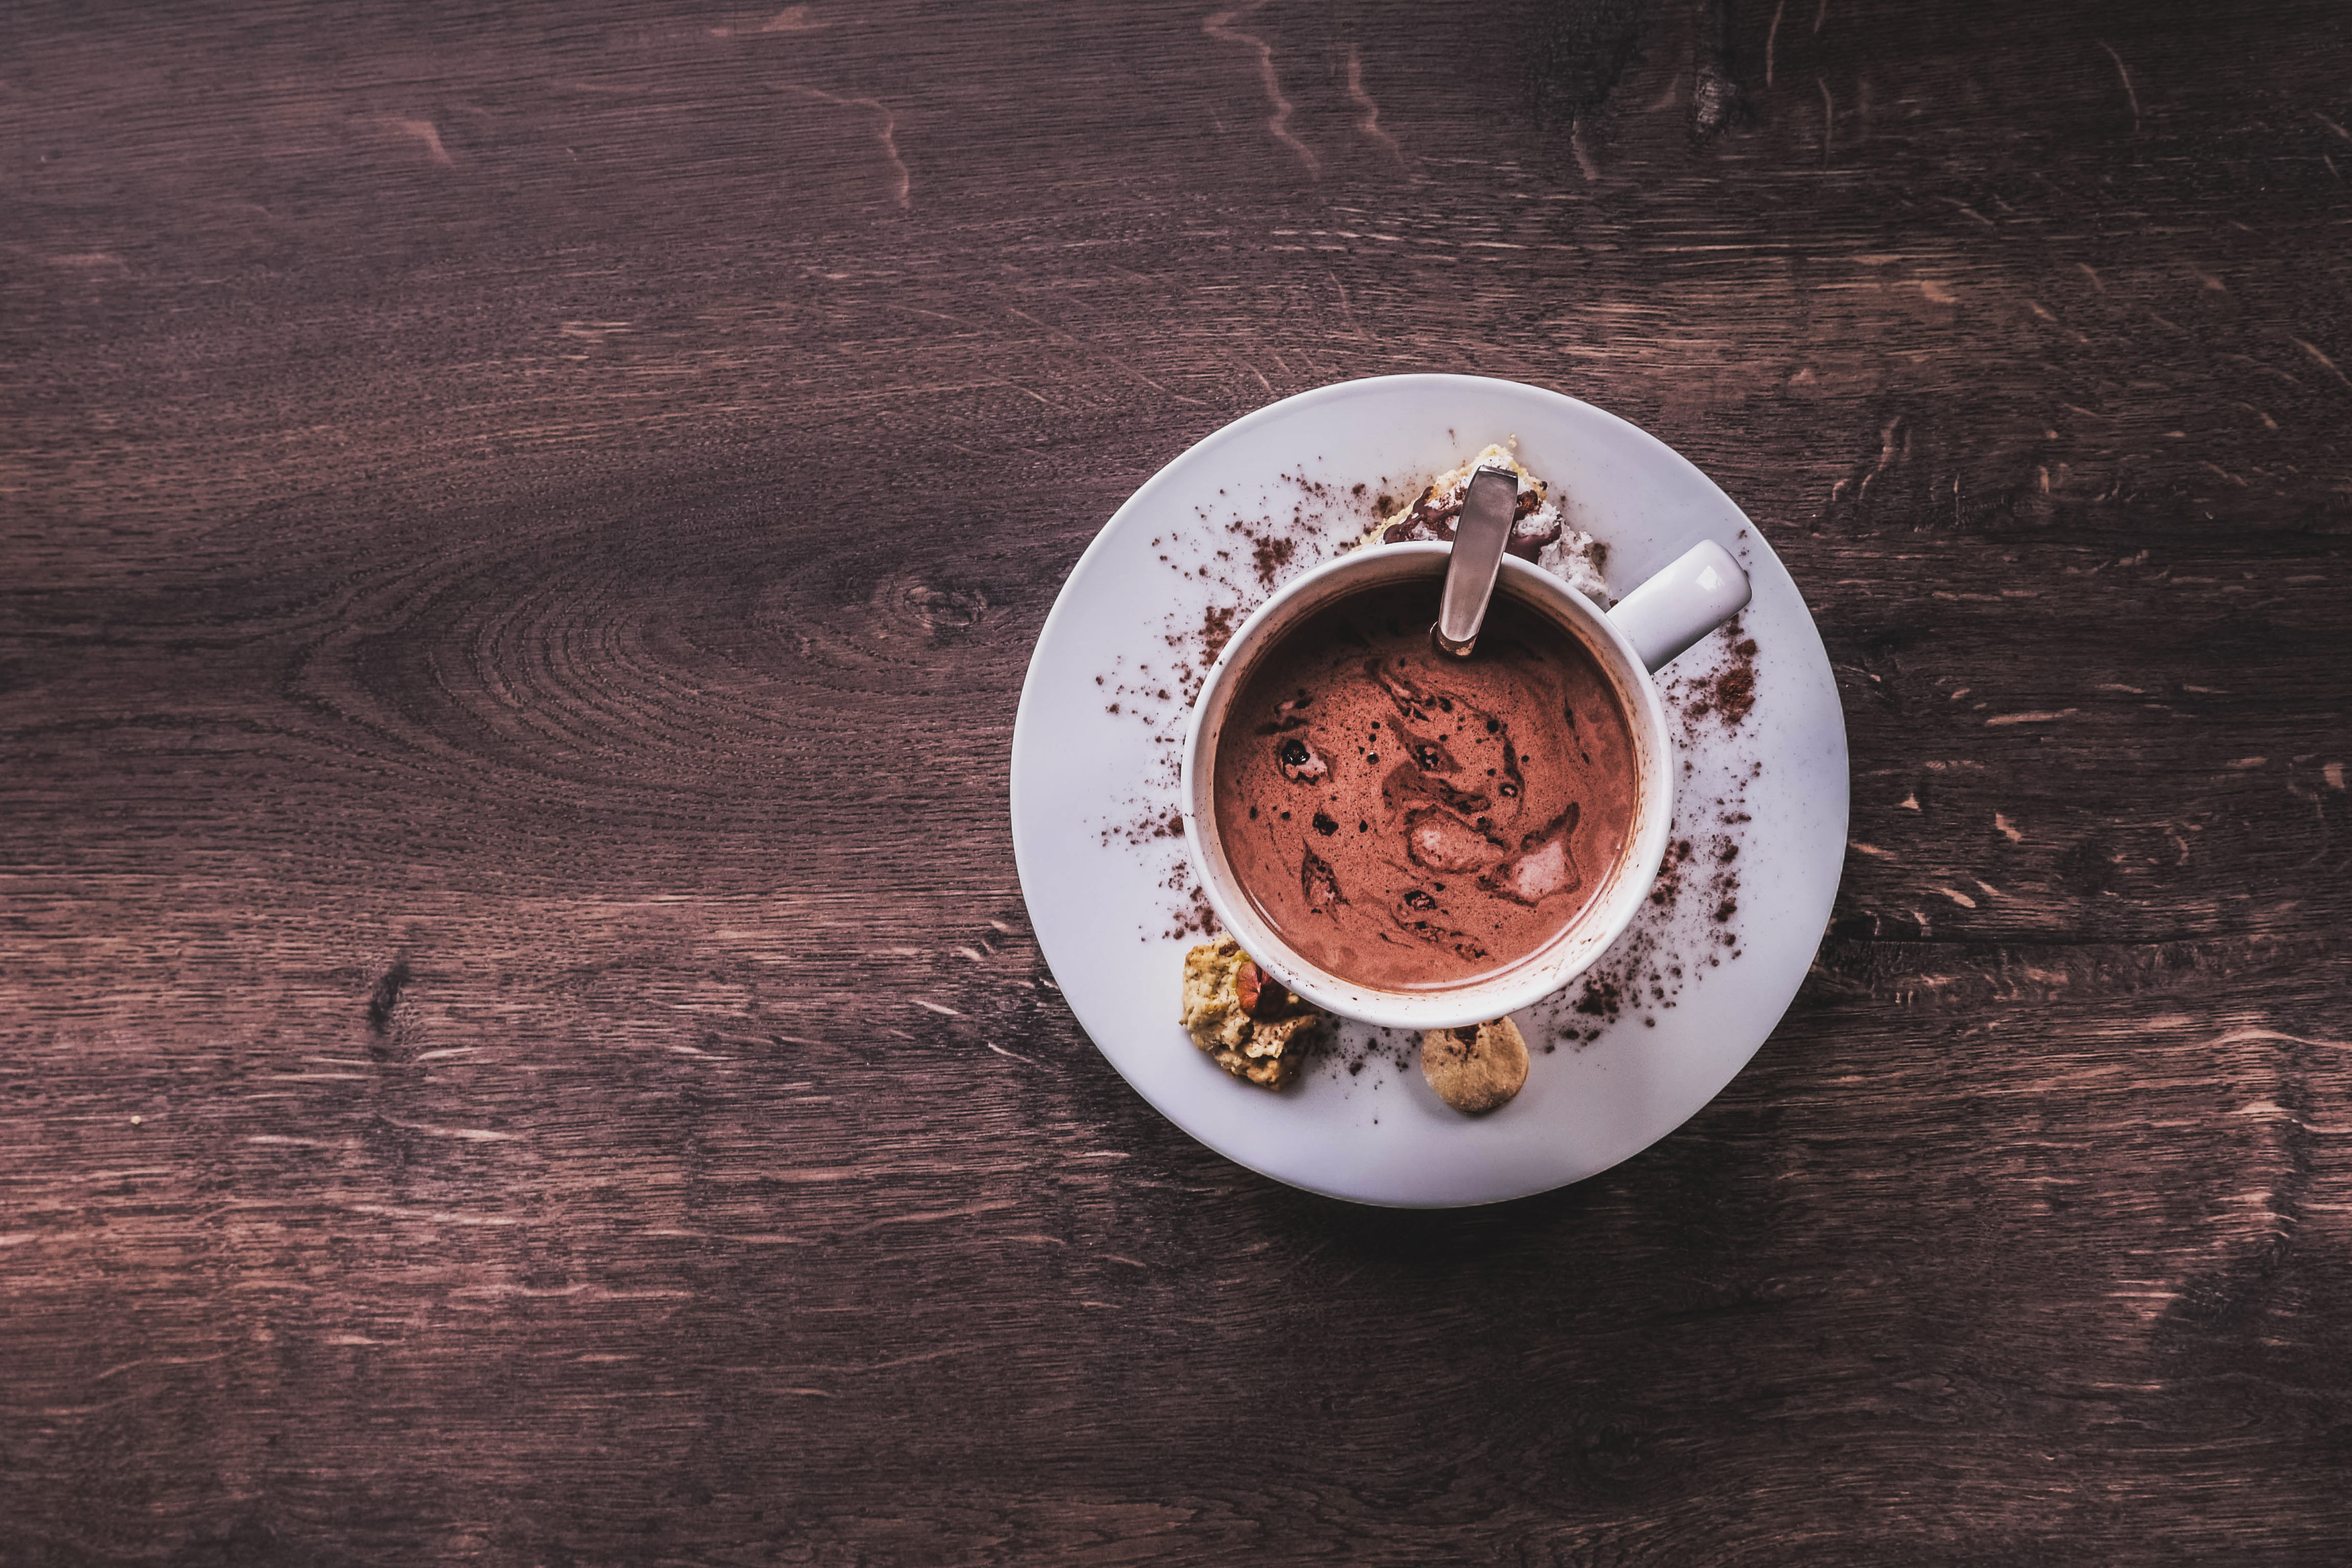 cup of hot chocolate on a wooden table